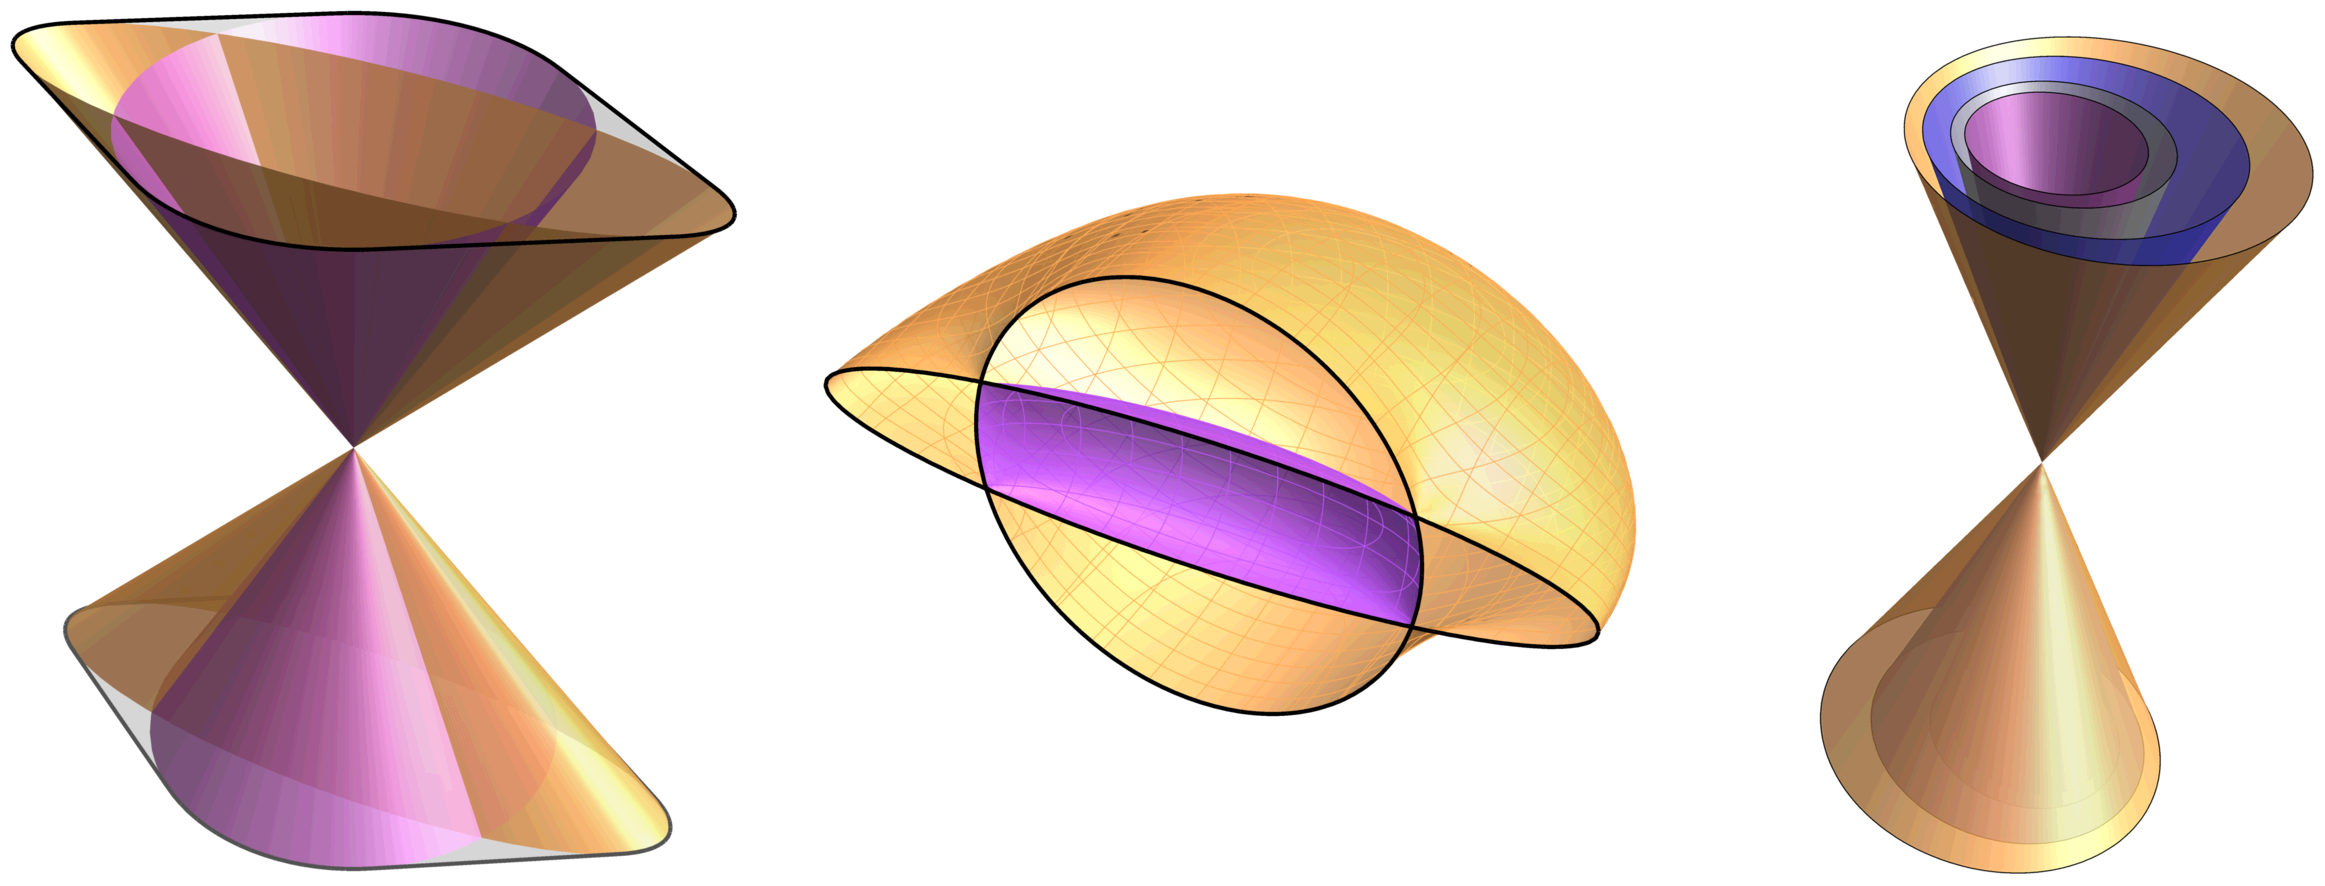 Some hyperbolic systems of physical significance: (a) the ray cone of Maxwell's equations for crystal optics in 2+1 dimensions, (b) the section of the ray surface for the crystal optics example in 3+1 dimensions, and (c) a symmetric hyperbolic system obtained from the 3+1 form of the Einstein field equations. See appendix